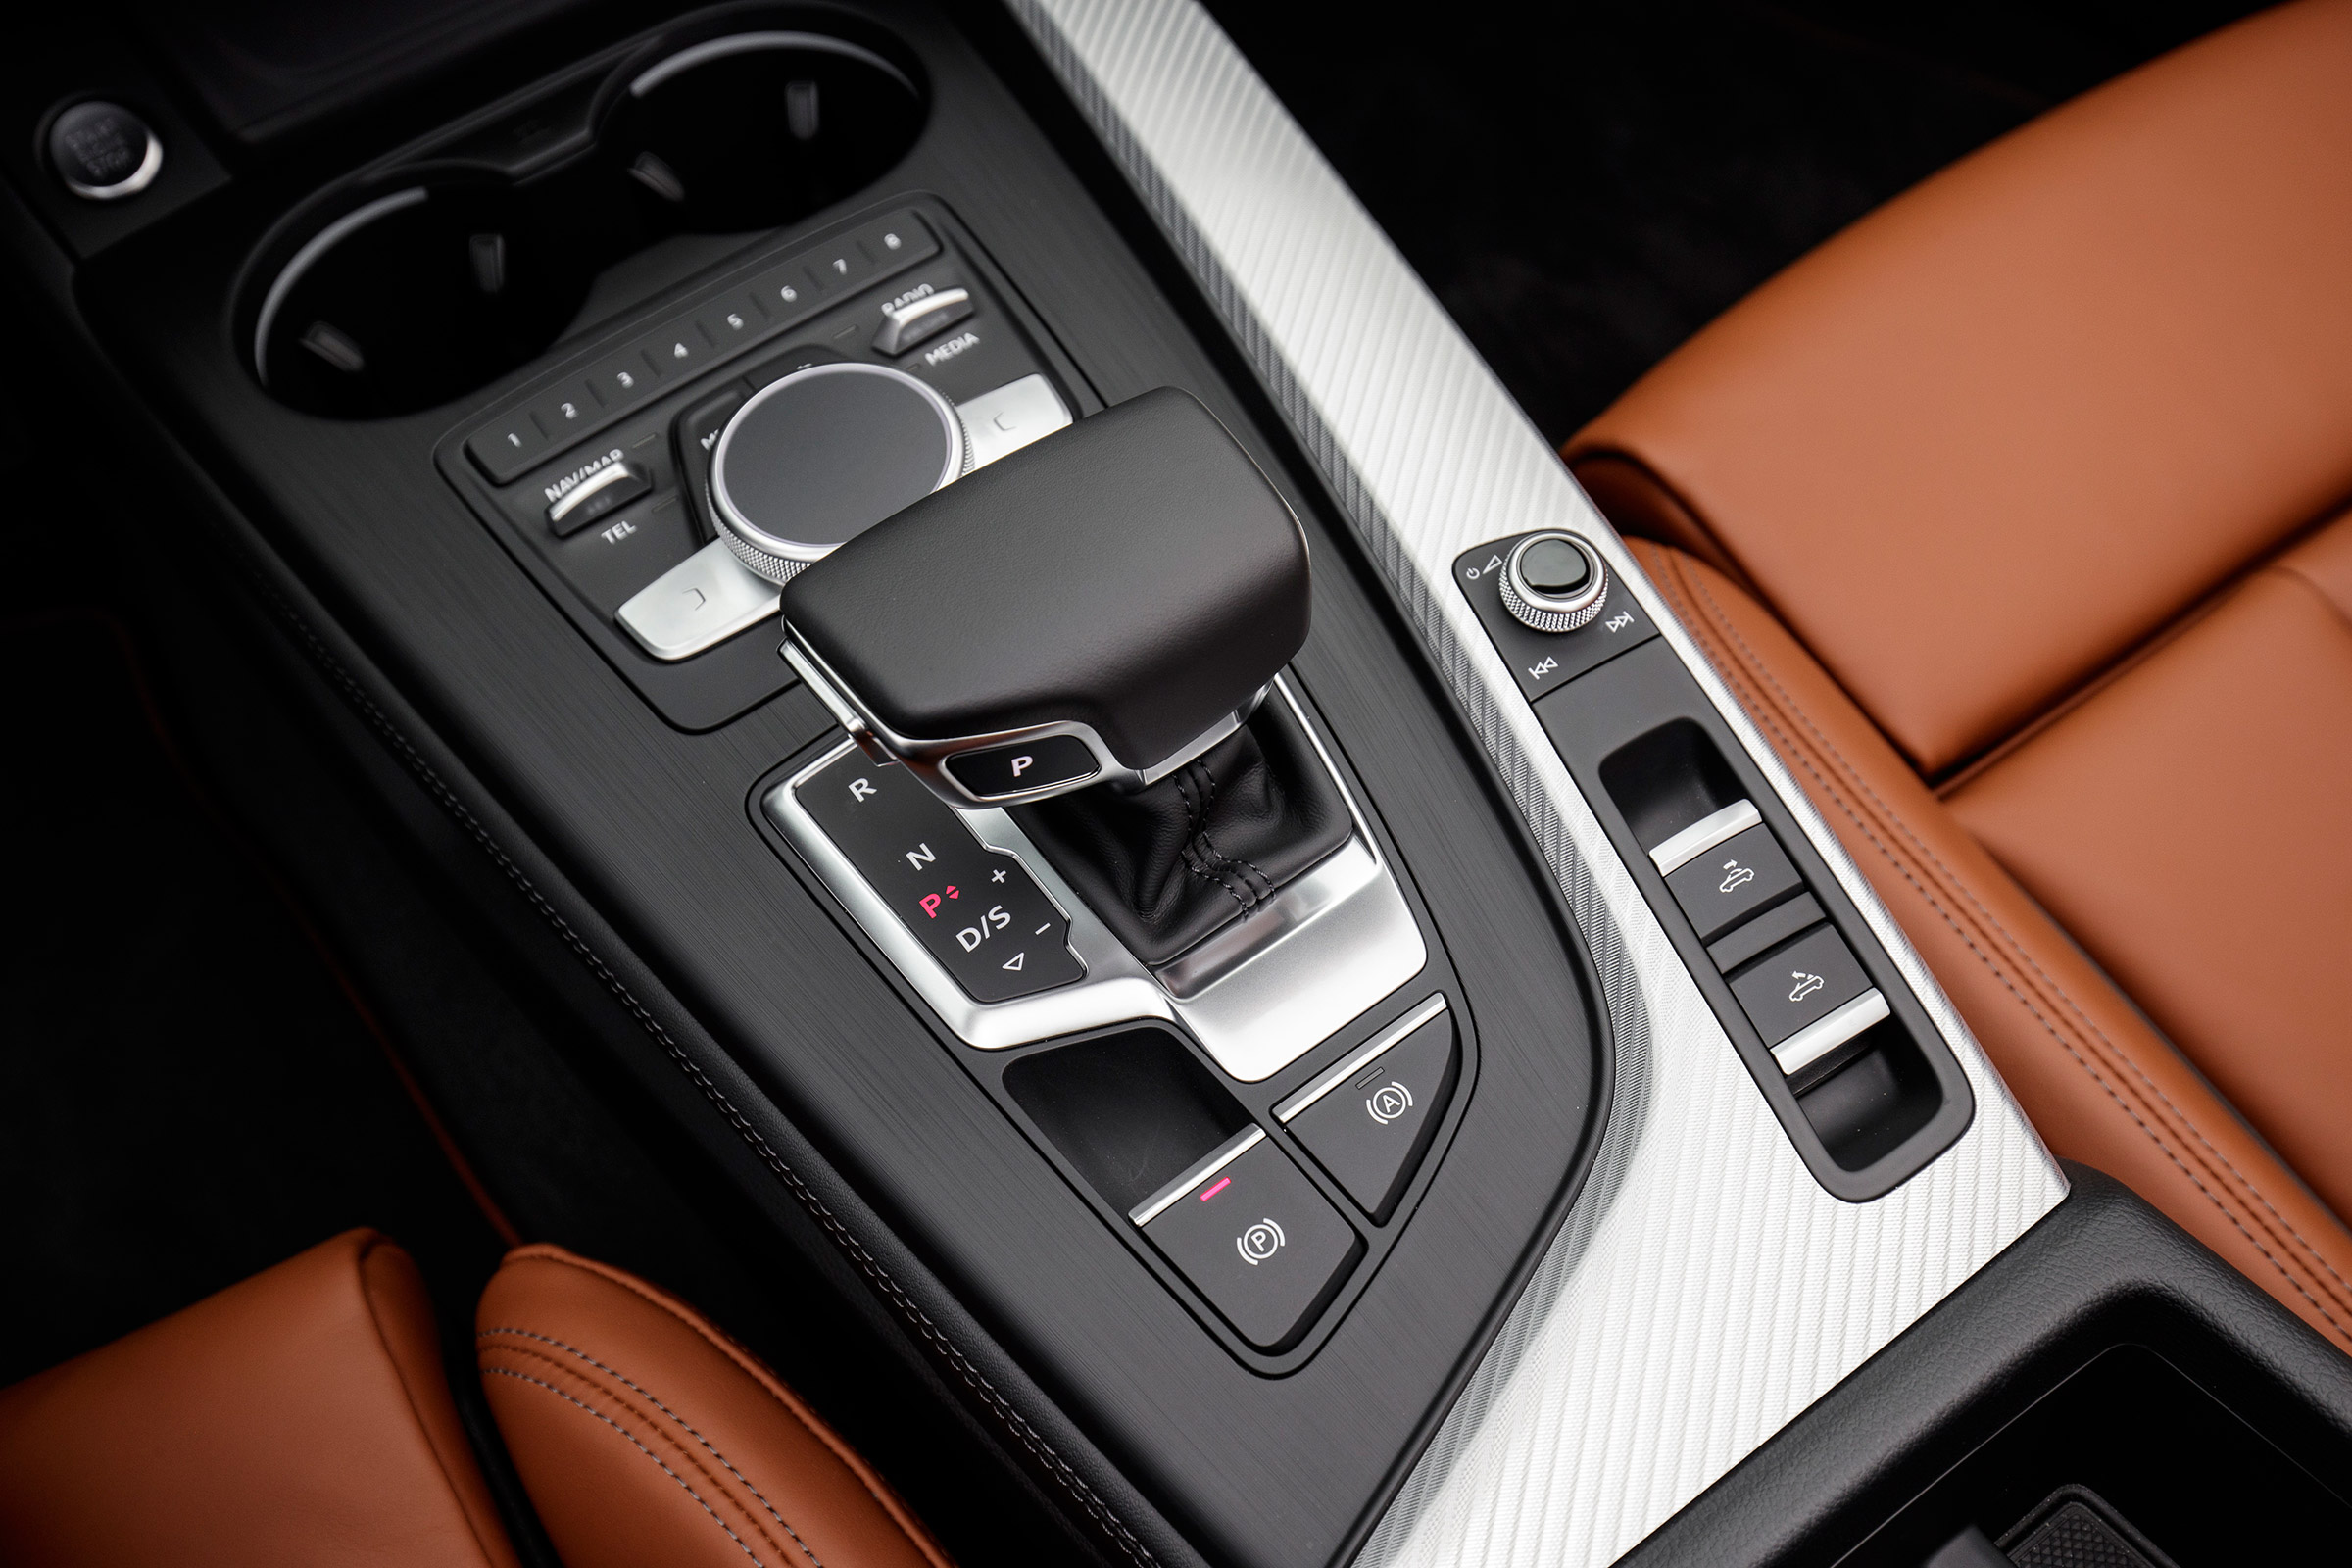 2017 Audi A5 Cabriolet Interior View Gear Shifter And Center Console (Photo 13 of 18)